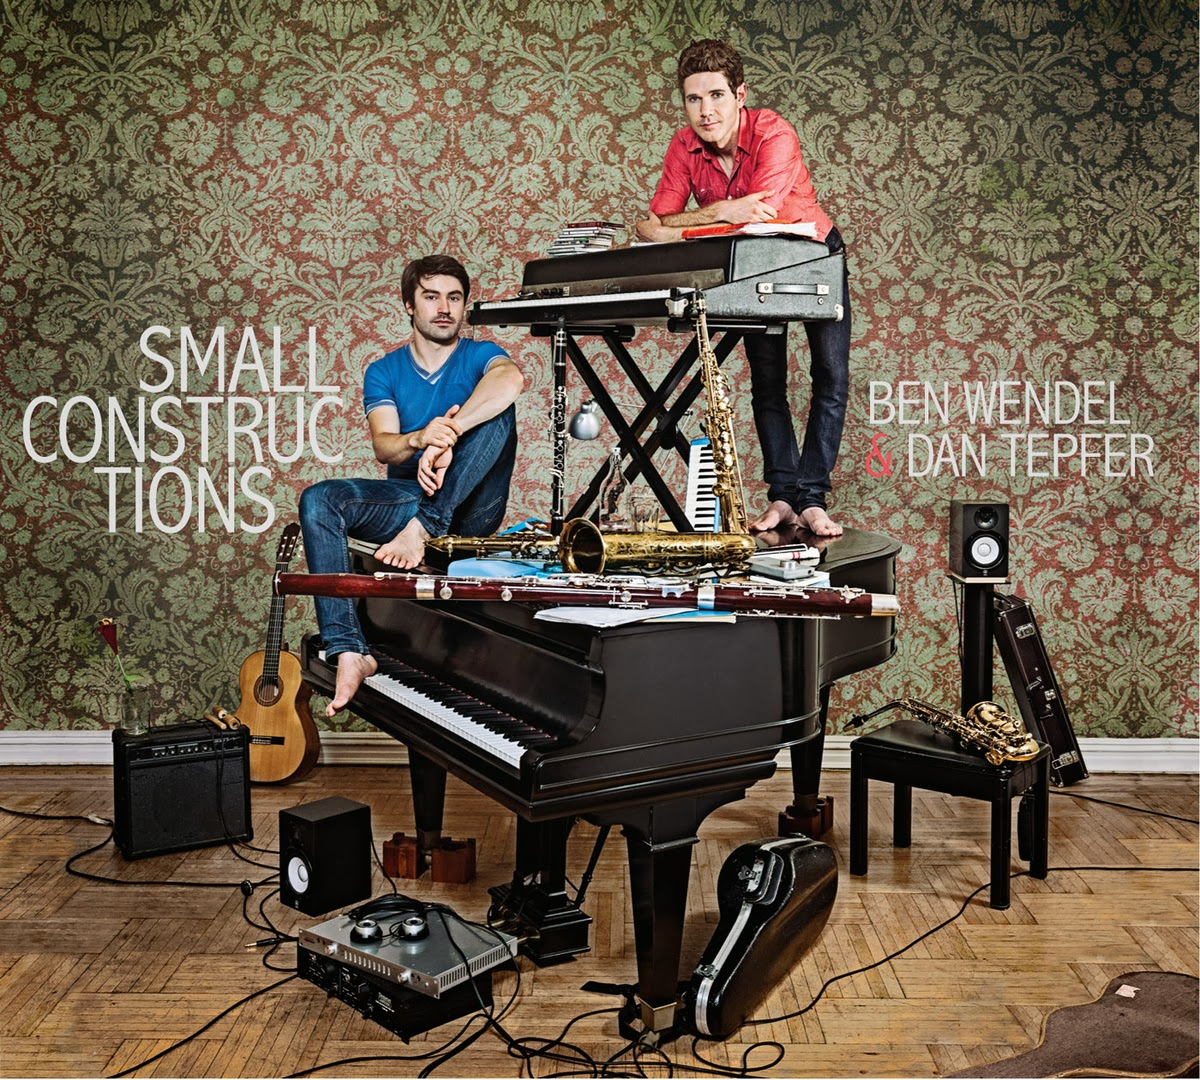 BEN WENDEL - Small Constructions (with Dan Tepfer) cover